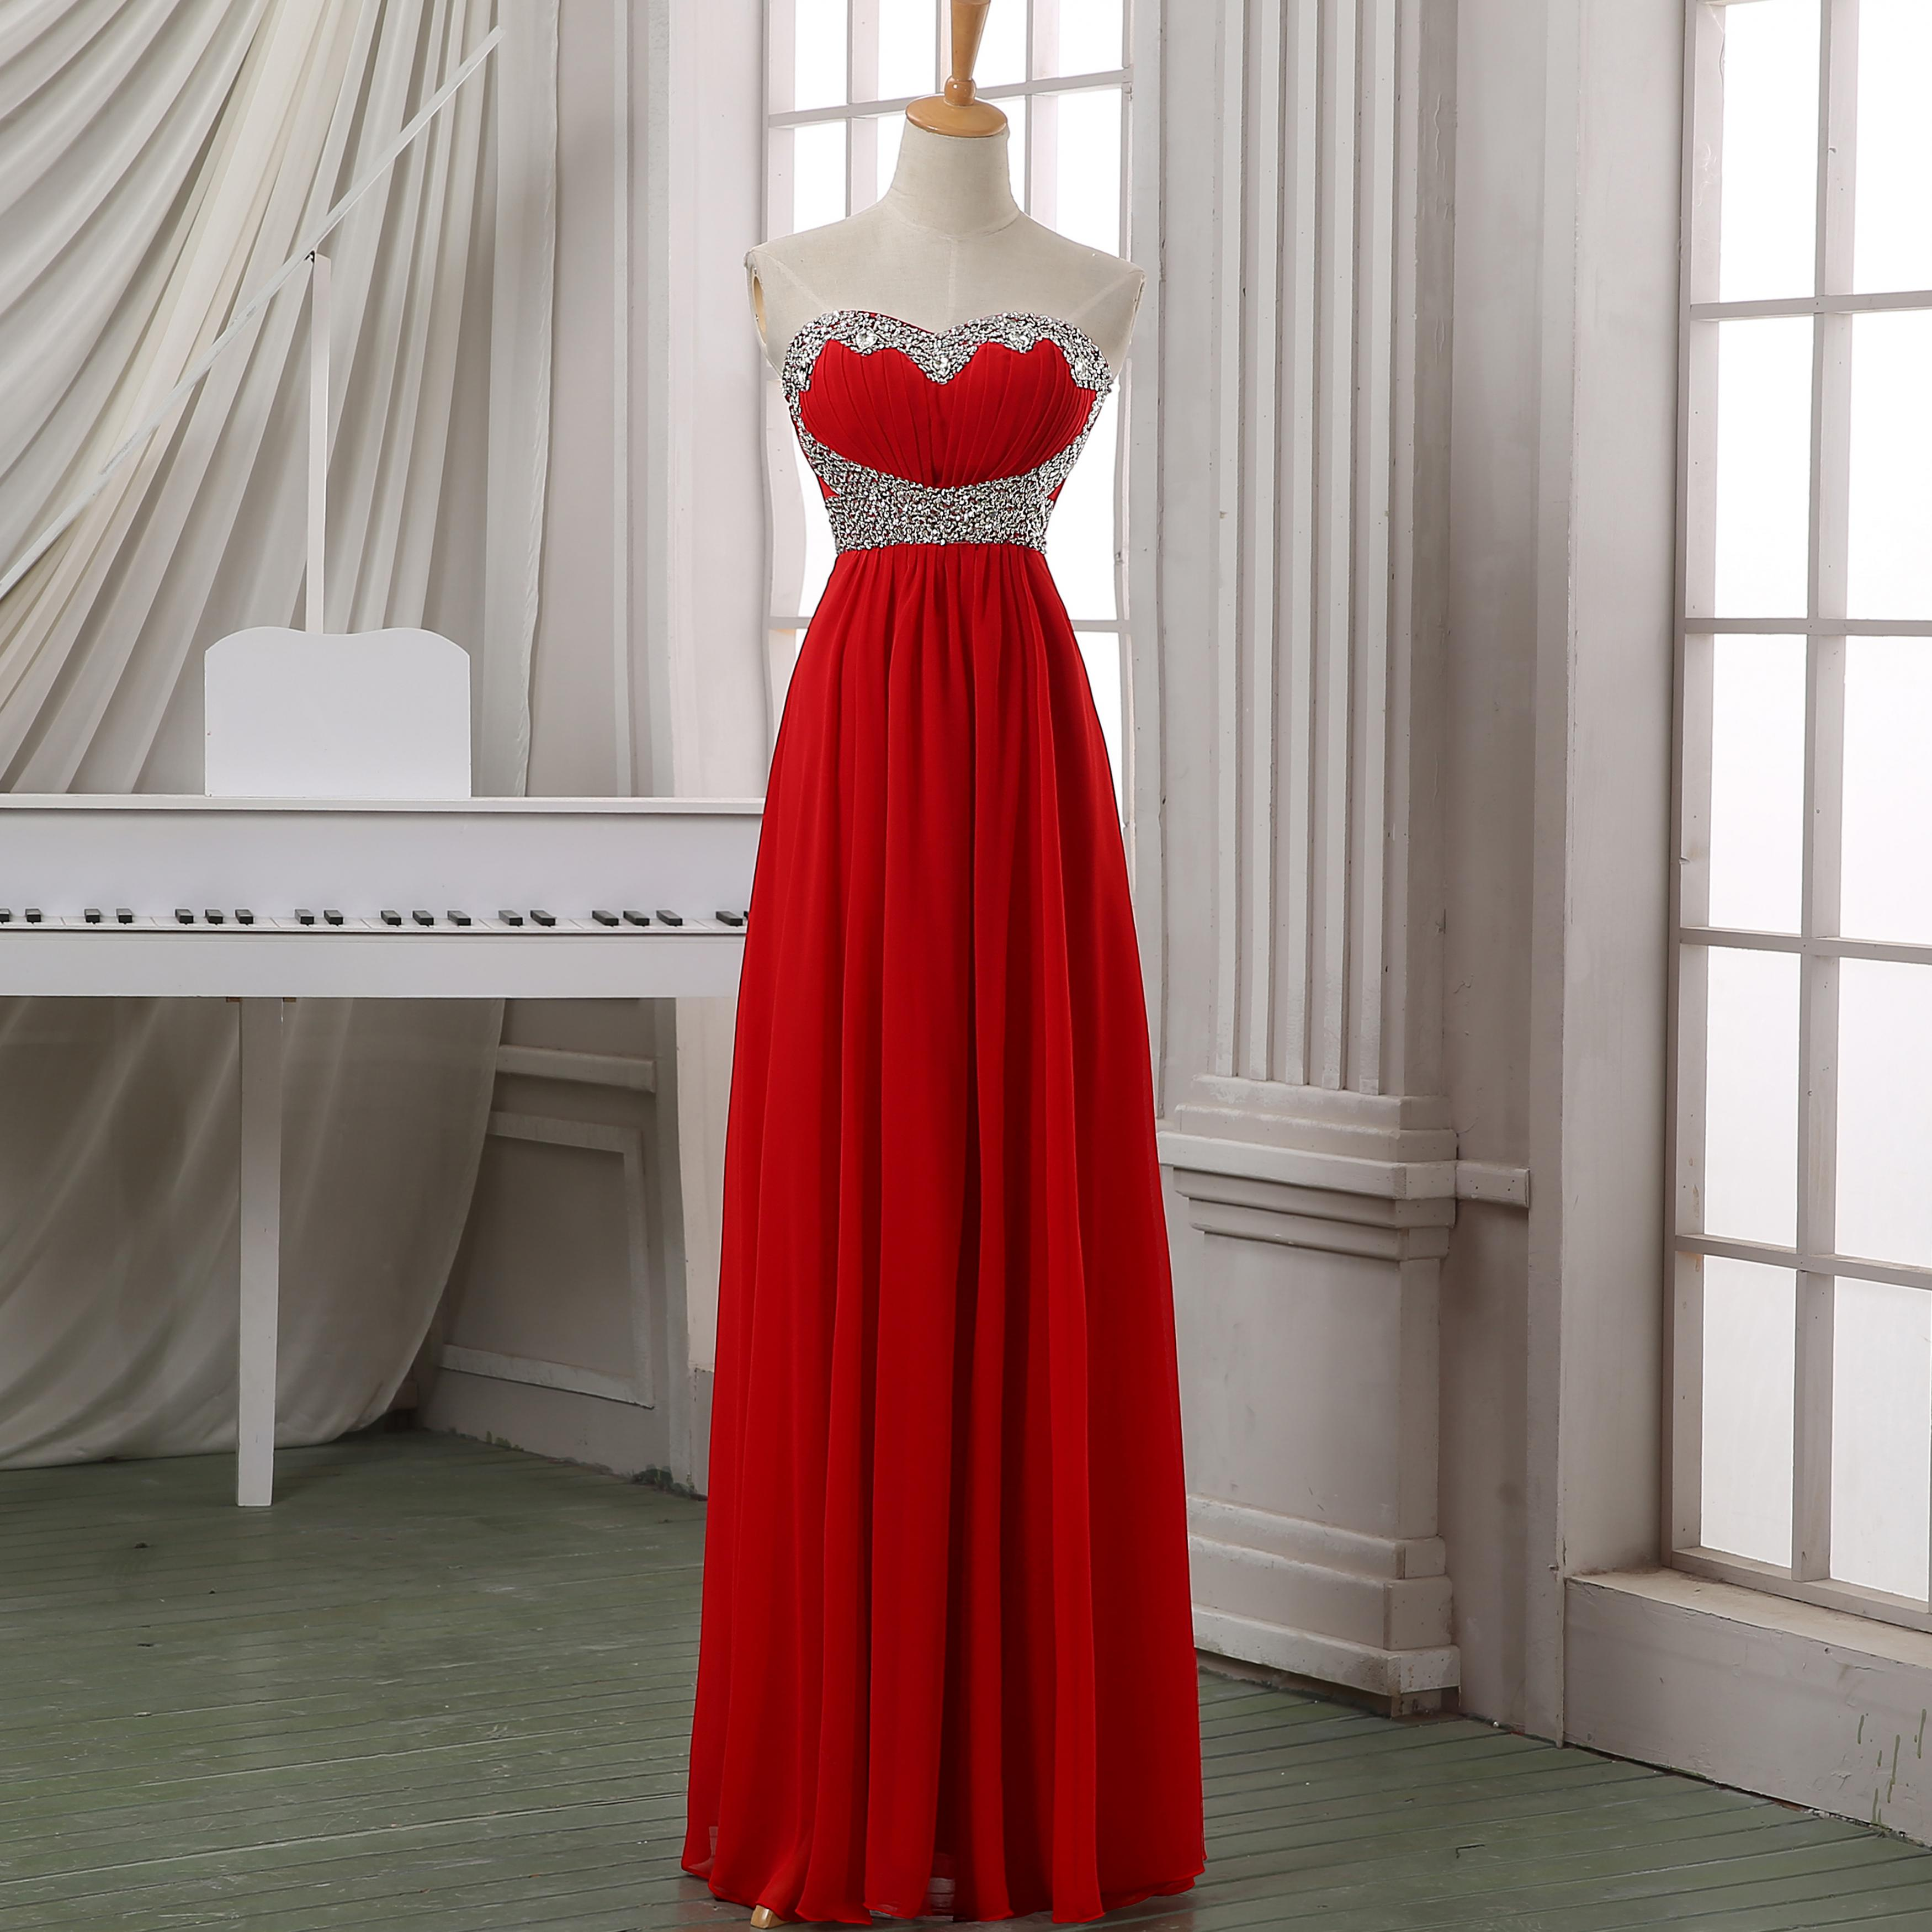 New Arrival Red Chiffon Beading Prom Dress Evening Dress Red Maxi Dress Cheap Long Chiffion Dress Red Long Prom Dress Wedding Party Dress